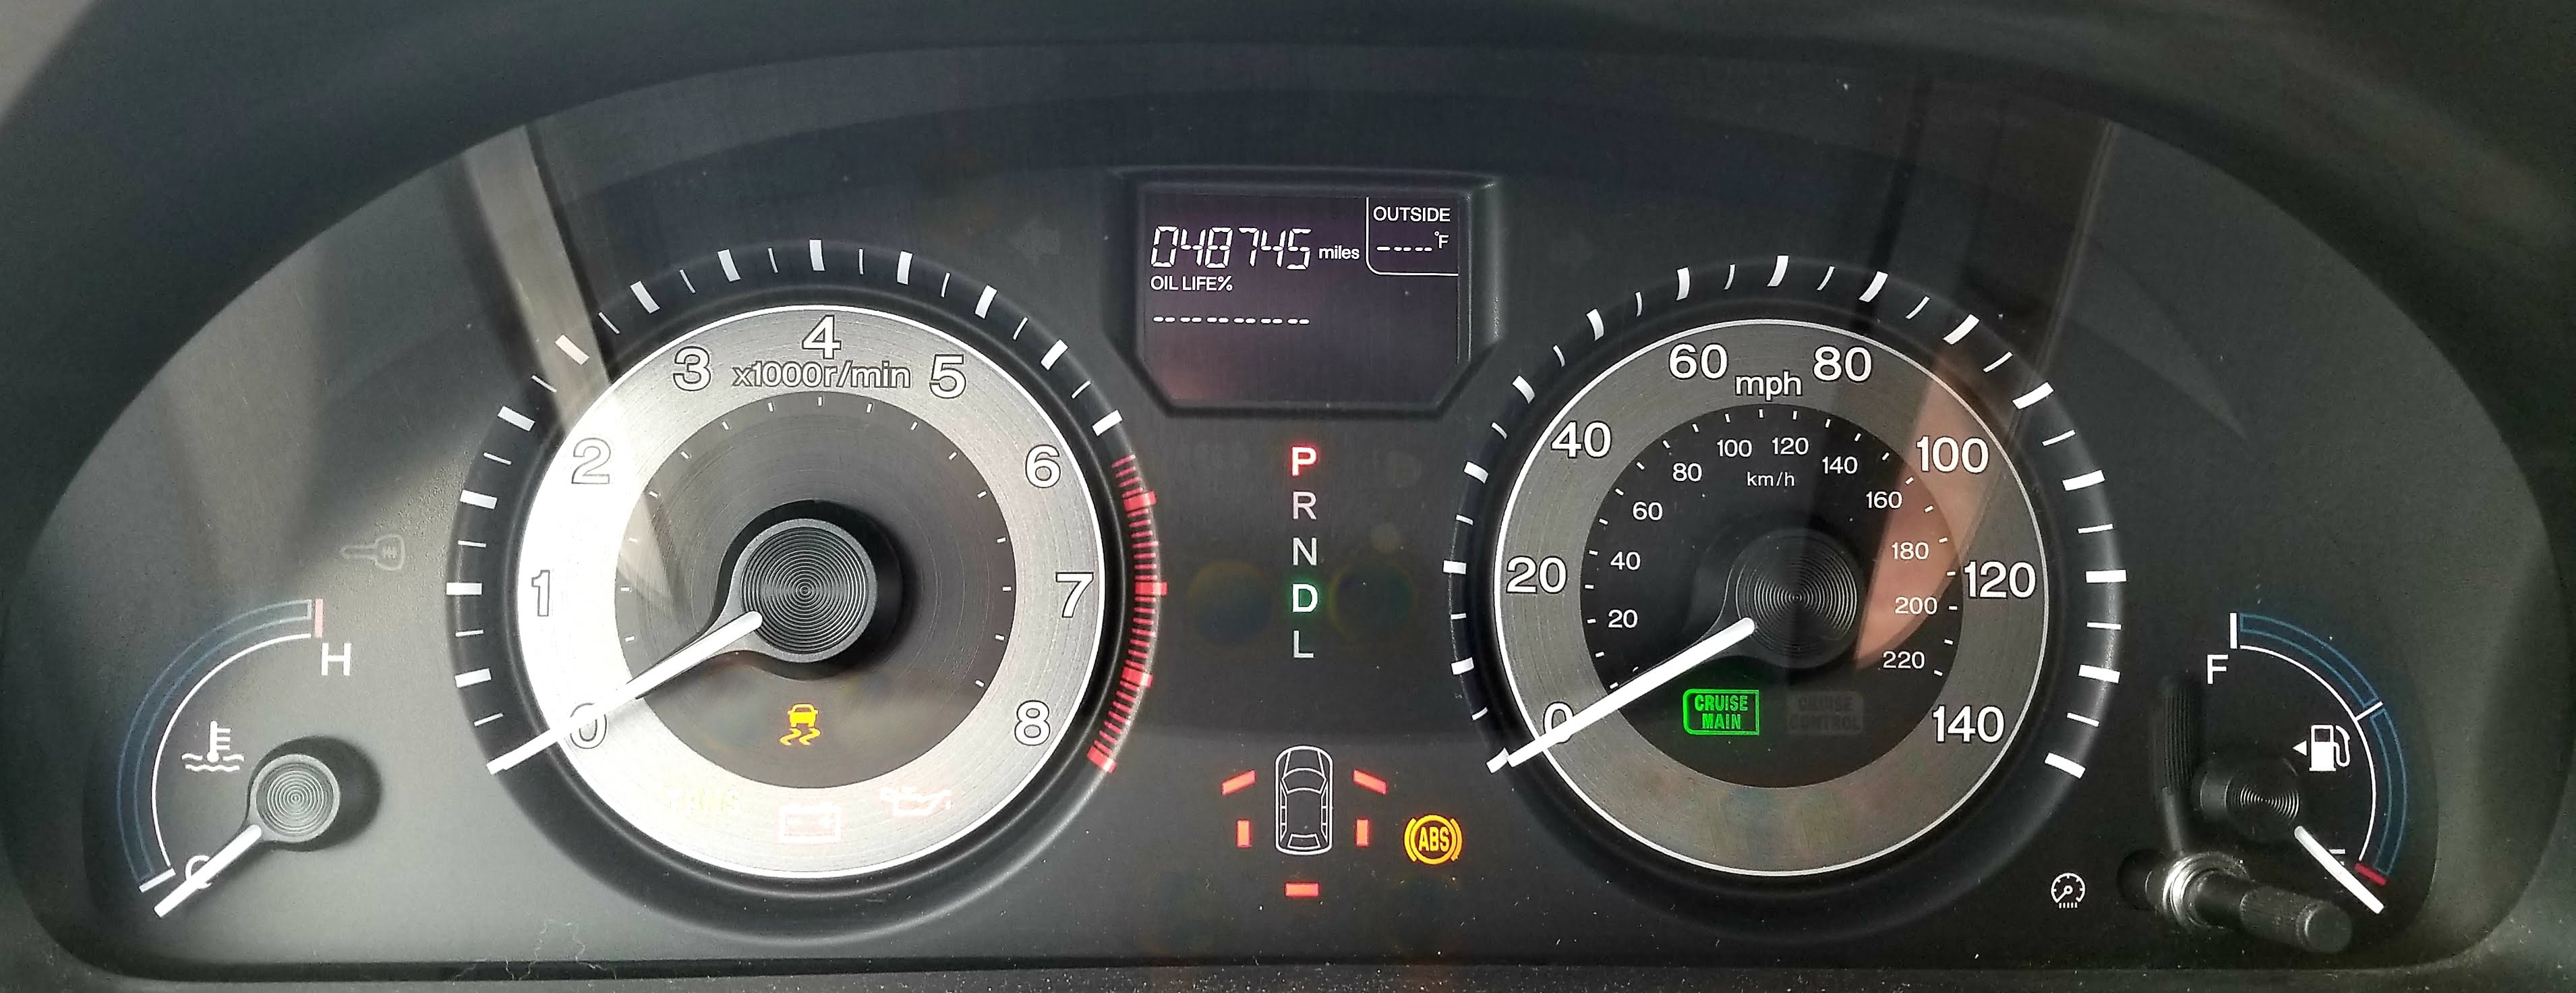 Honda Abs Vsa Dash Lights Stay On Easy Fault Reset Procedure